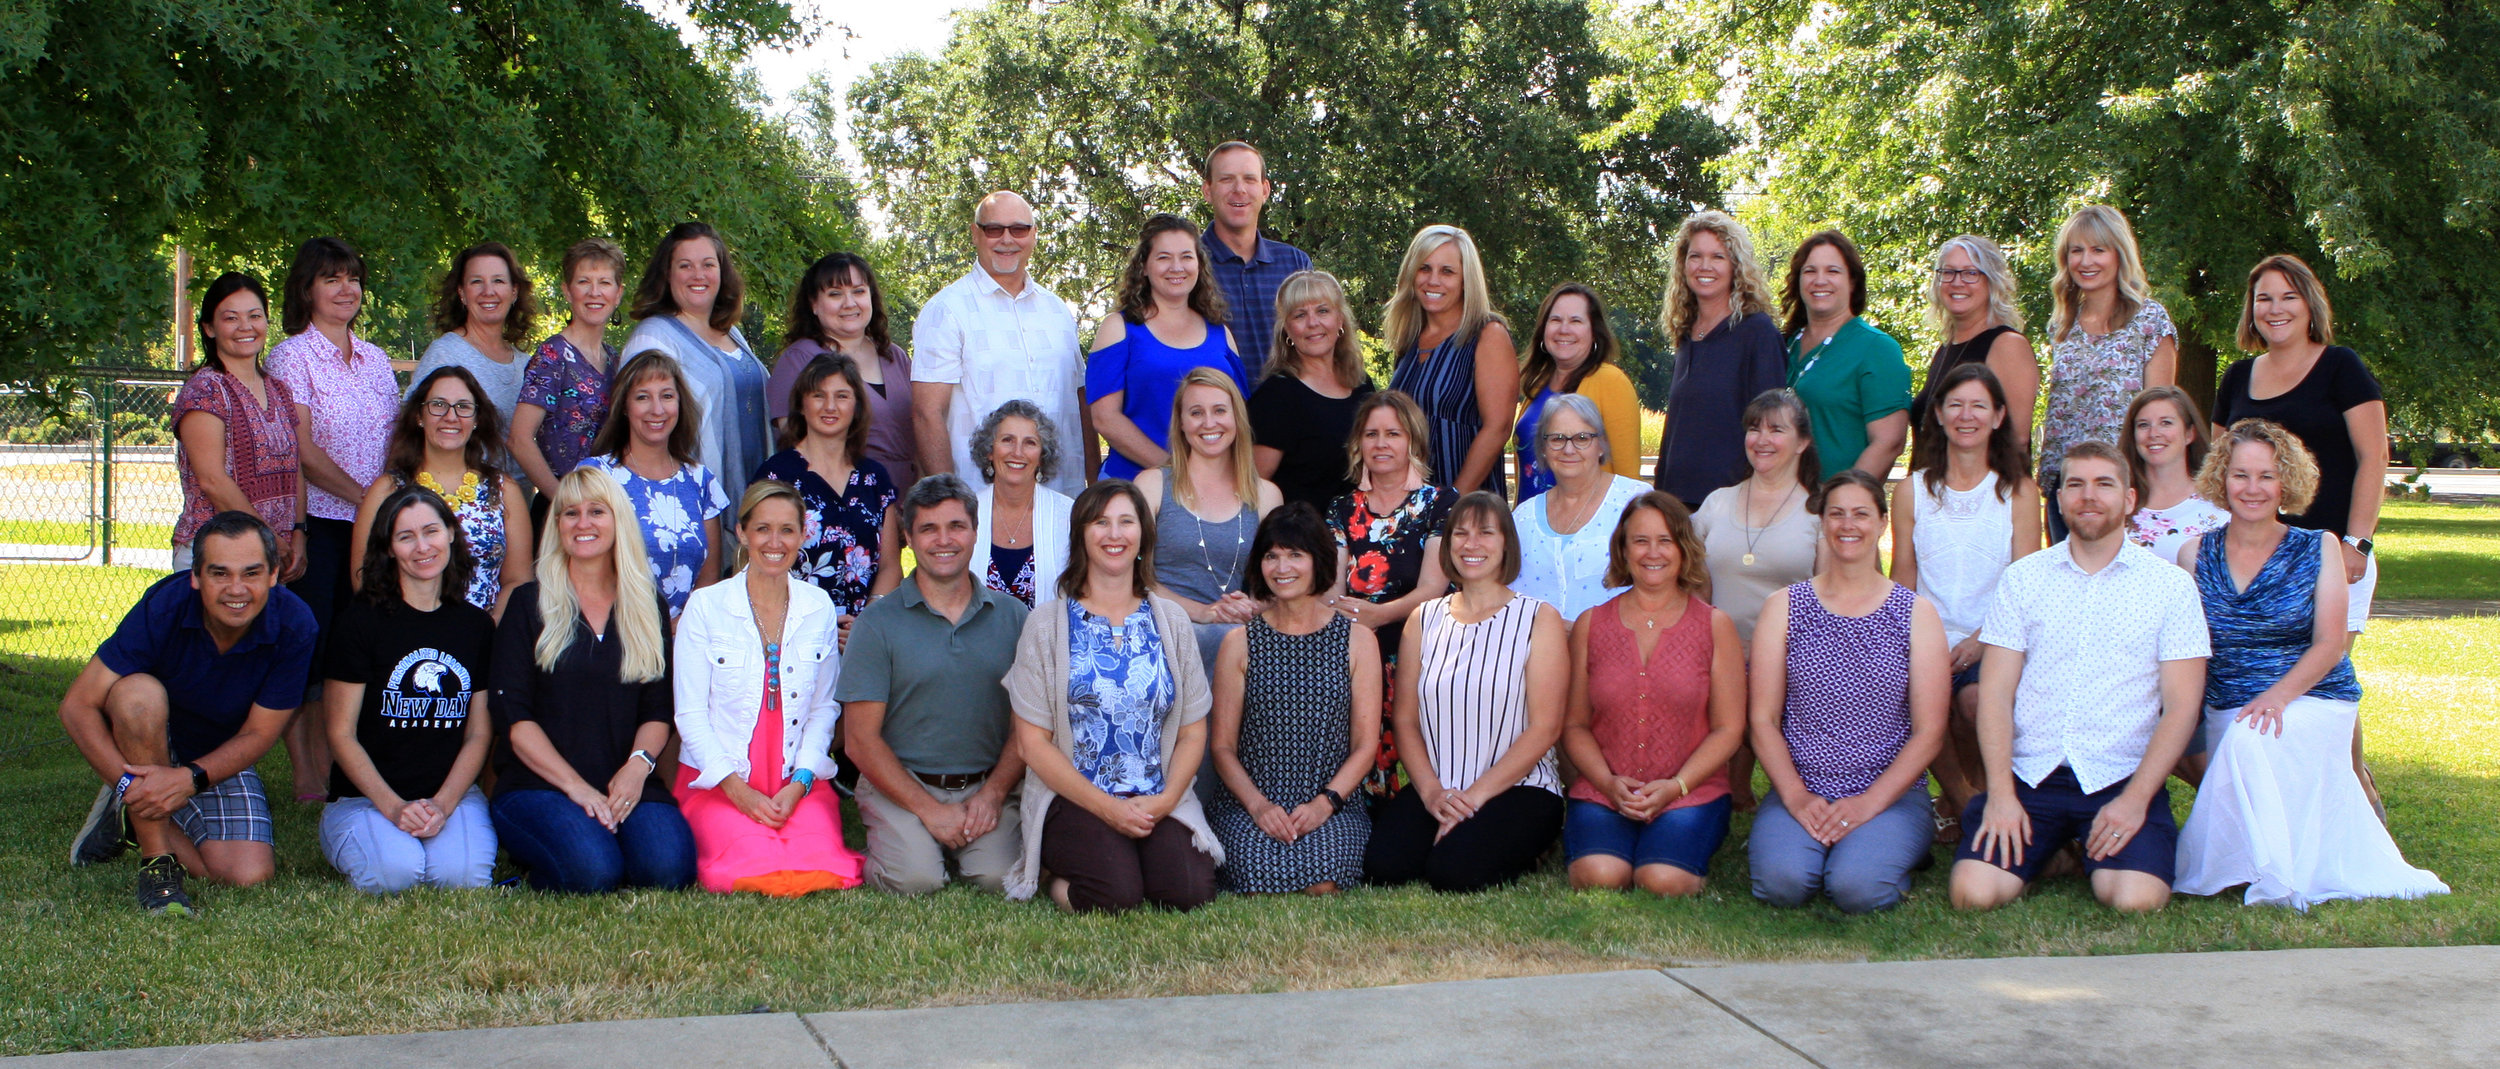 2019-2020 New Day Academy Staff and Board of Directors